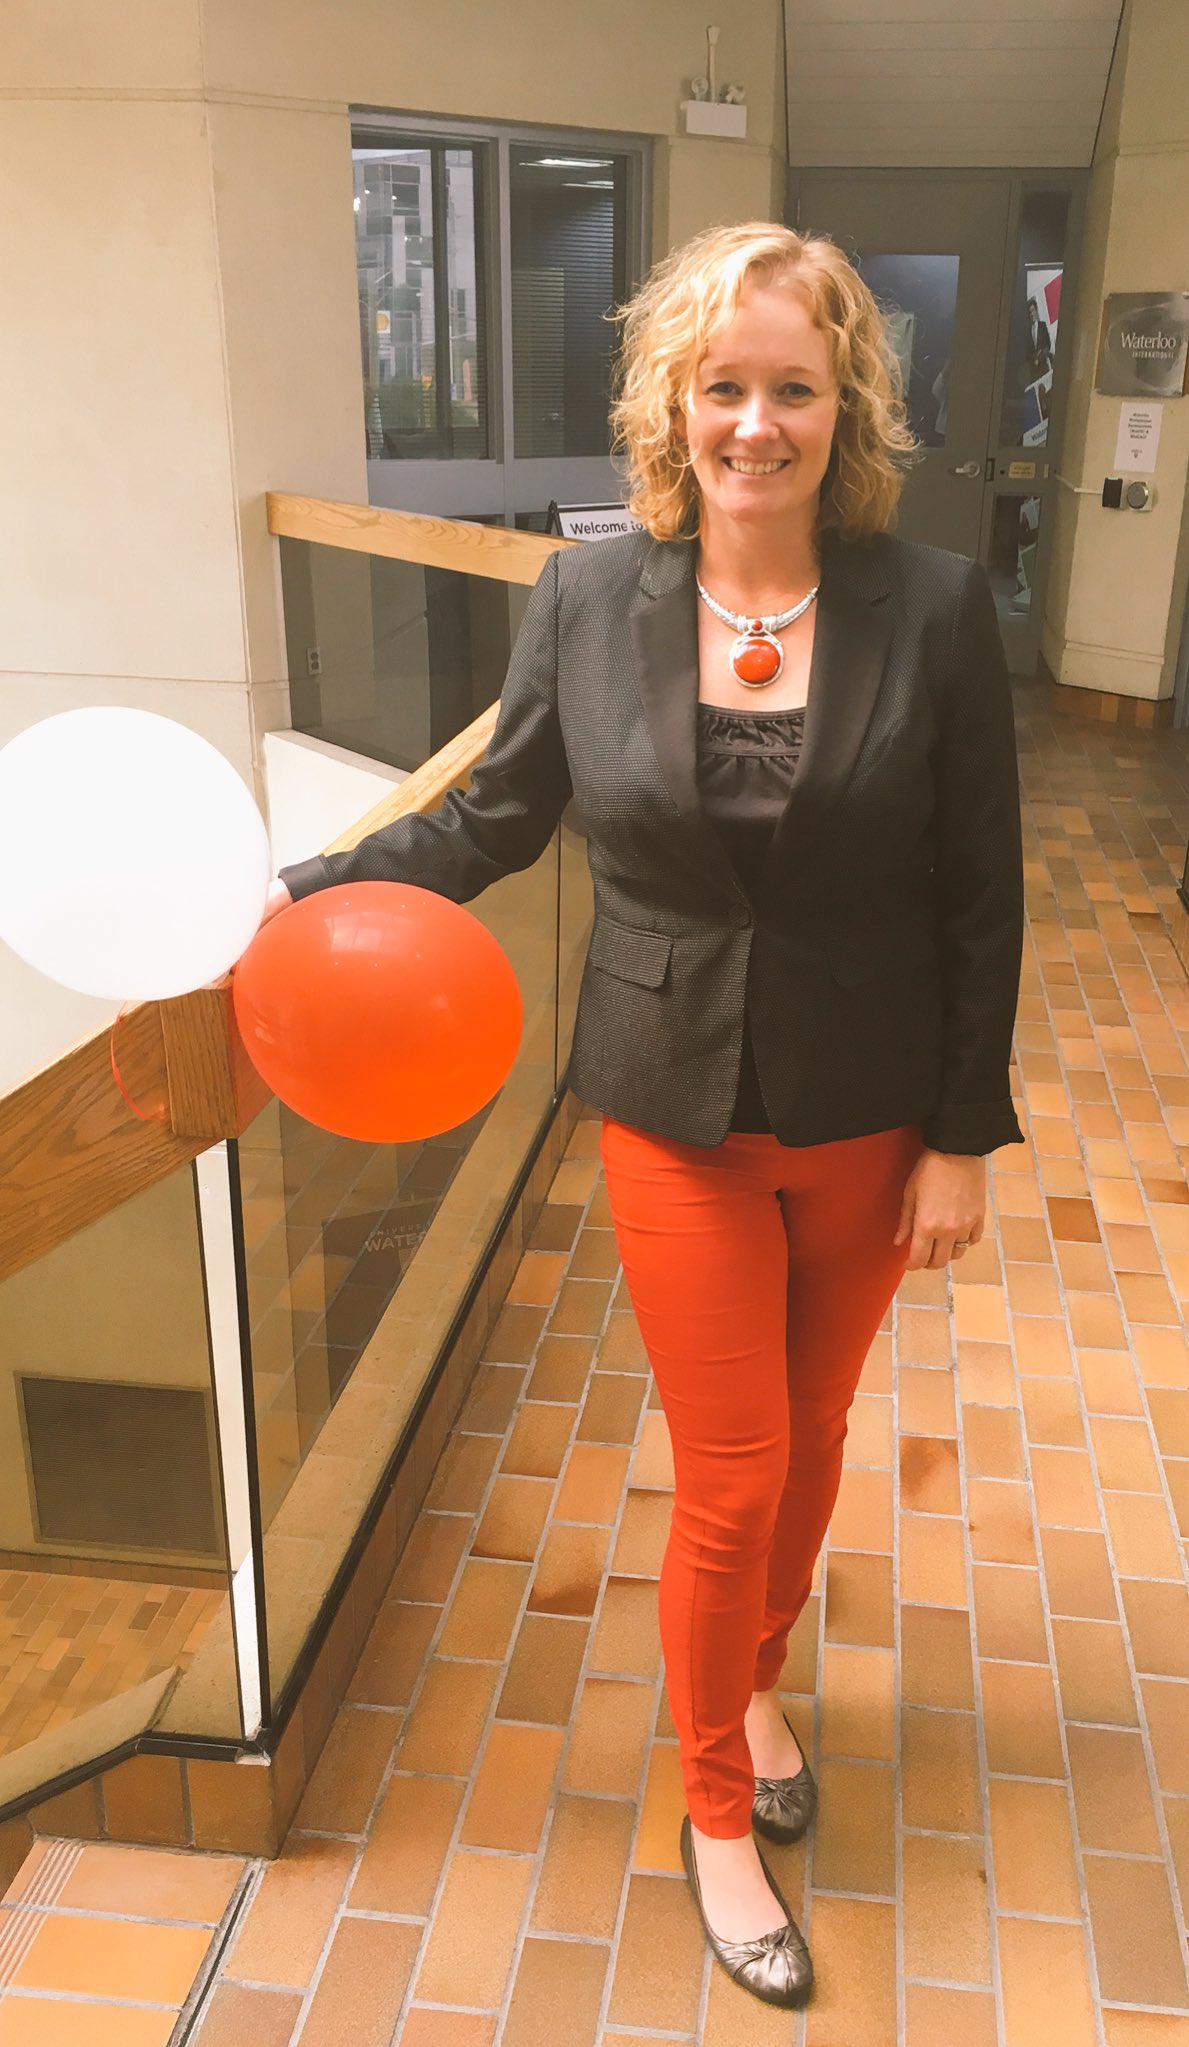 Wearing red in support of #UWUnitedWay @UnitedWayKW #uwaterloo https://t.co/IaE55e8T1P